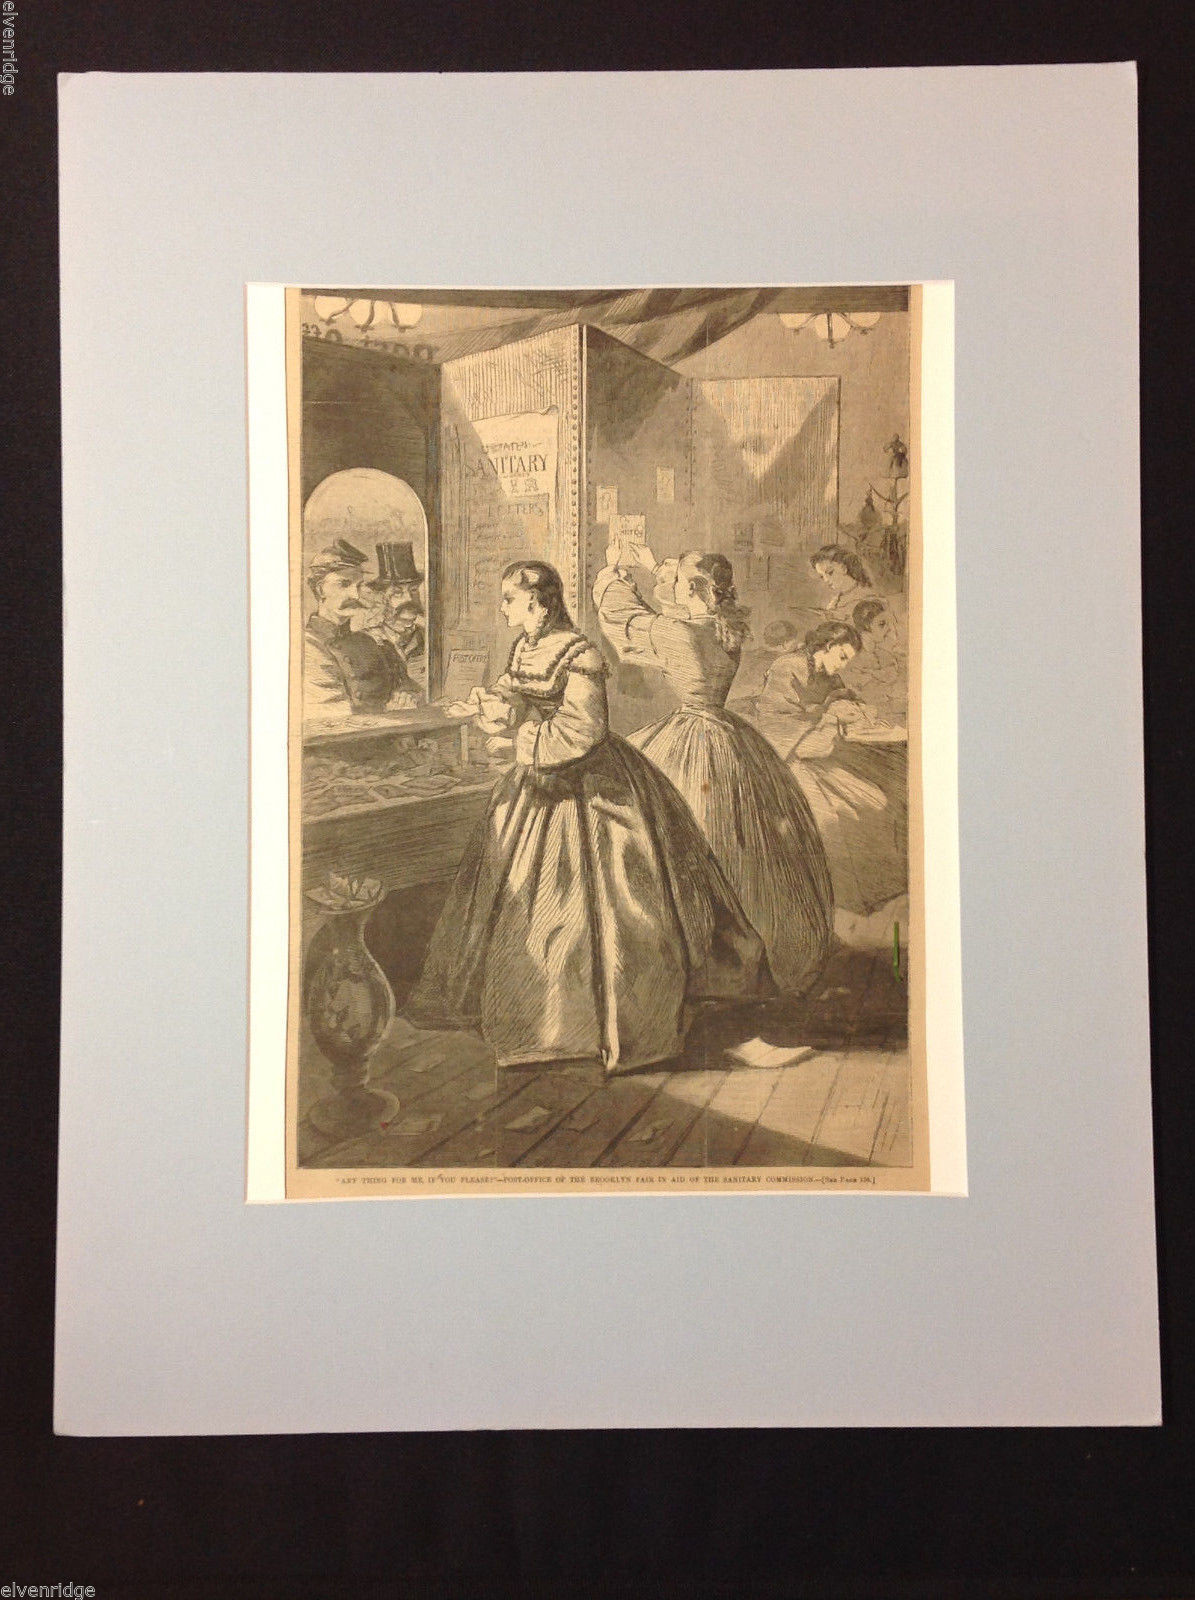 Harper's Weekly March 5th, 1864 Pg. #156 Framed Civil War Era Newspaper Print